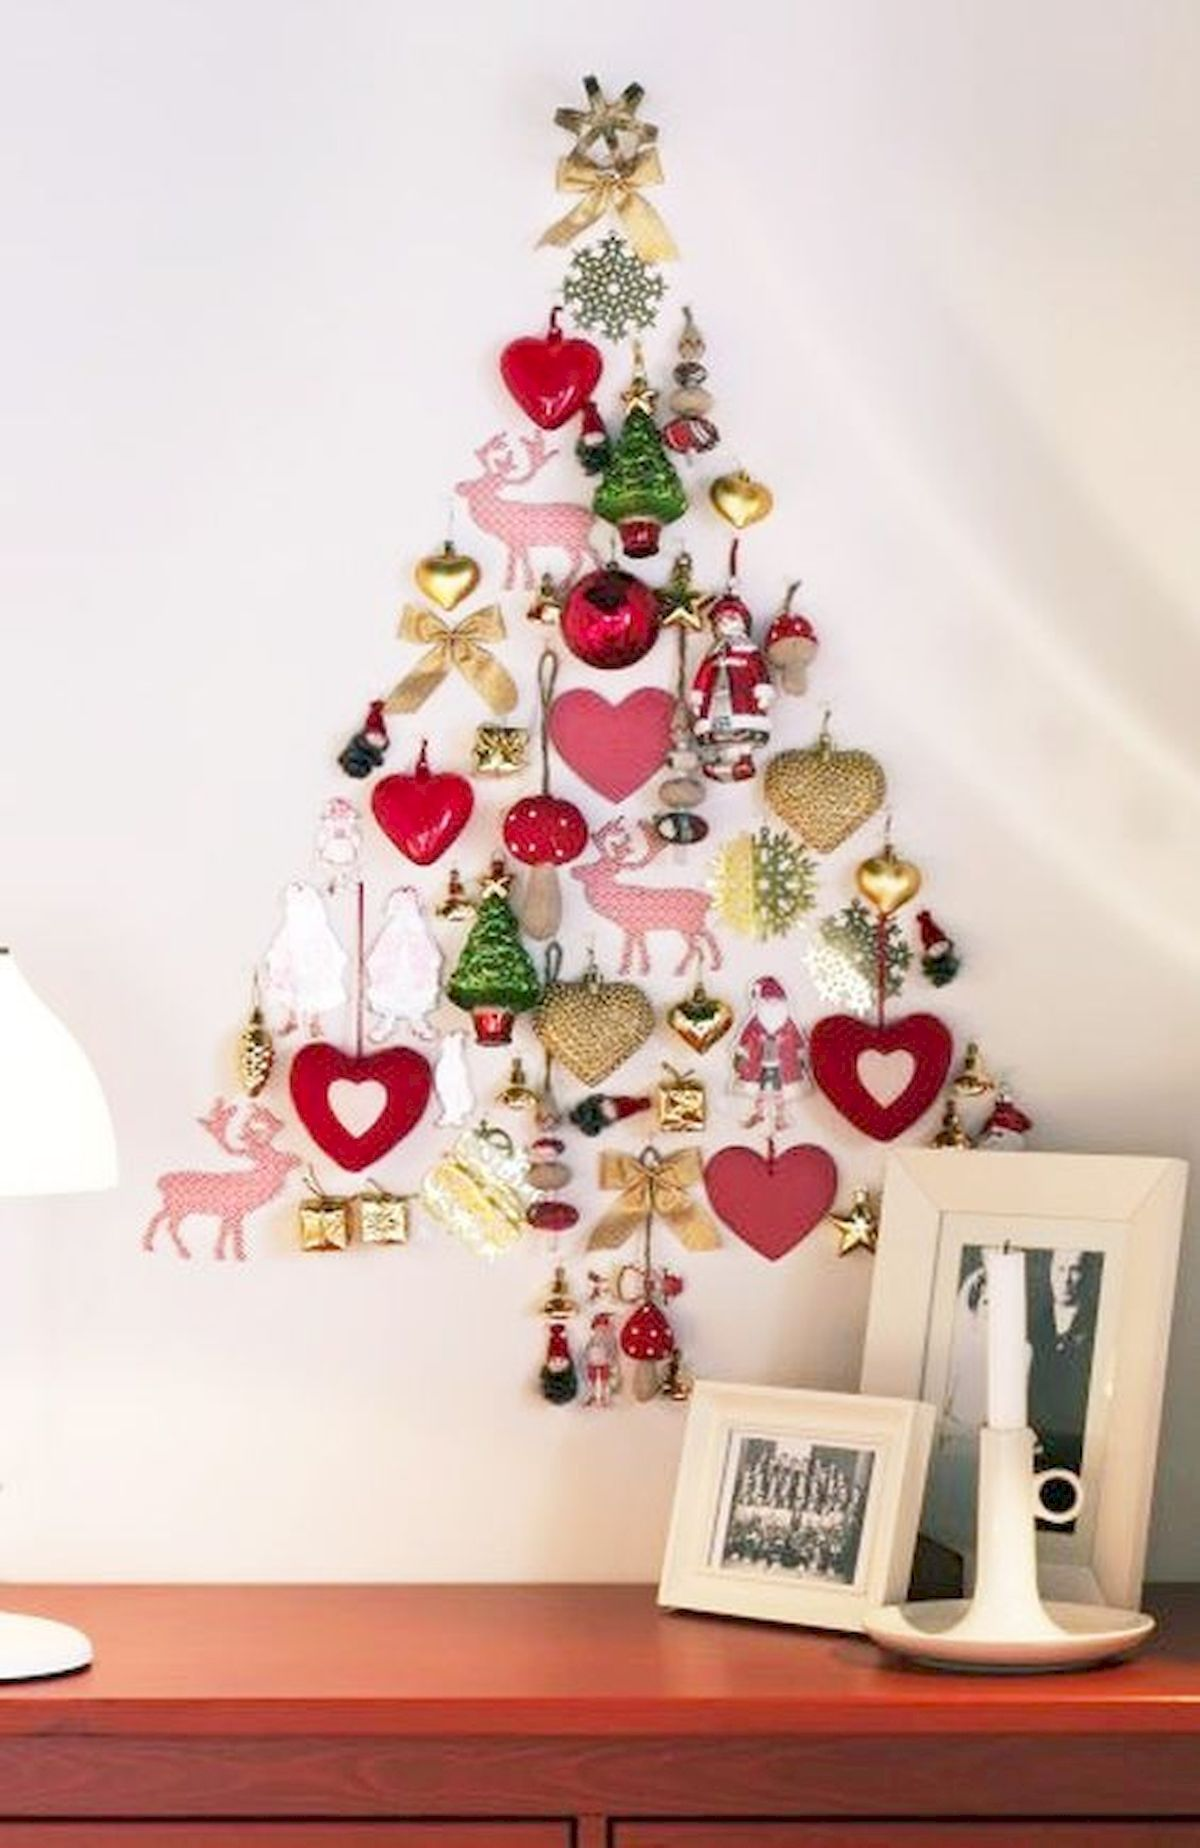 Cool 60 Awesome 2018 Christmas Wall Art Decor Ideas Httpscoachdecorcom